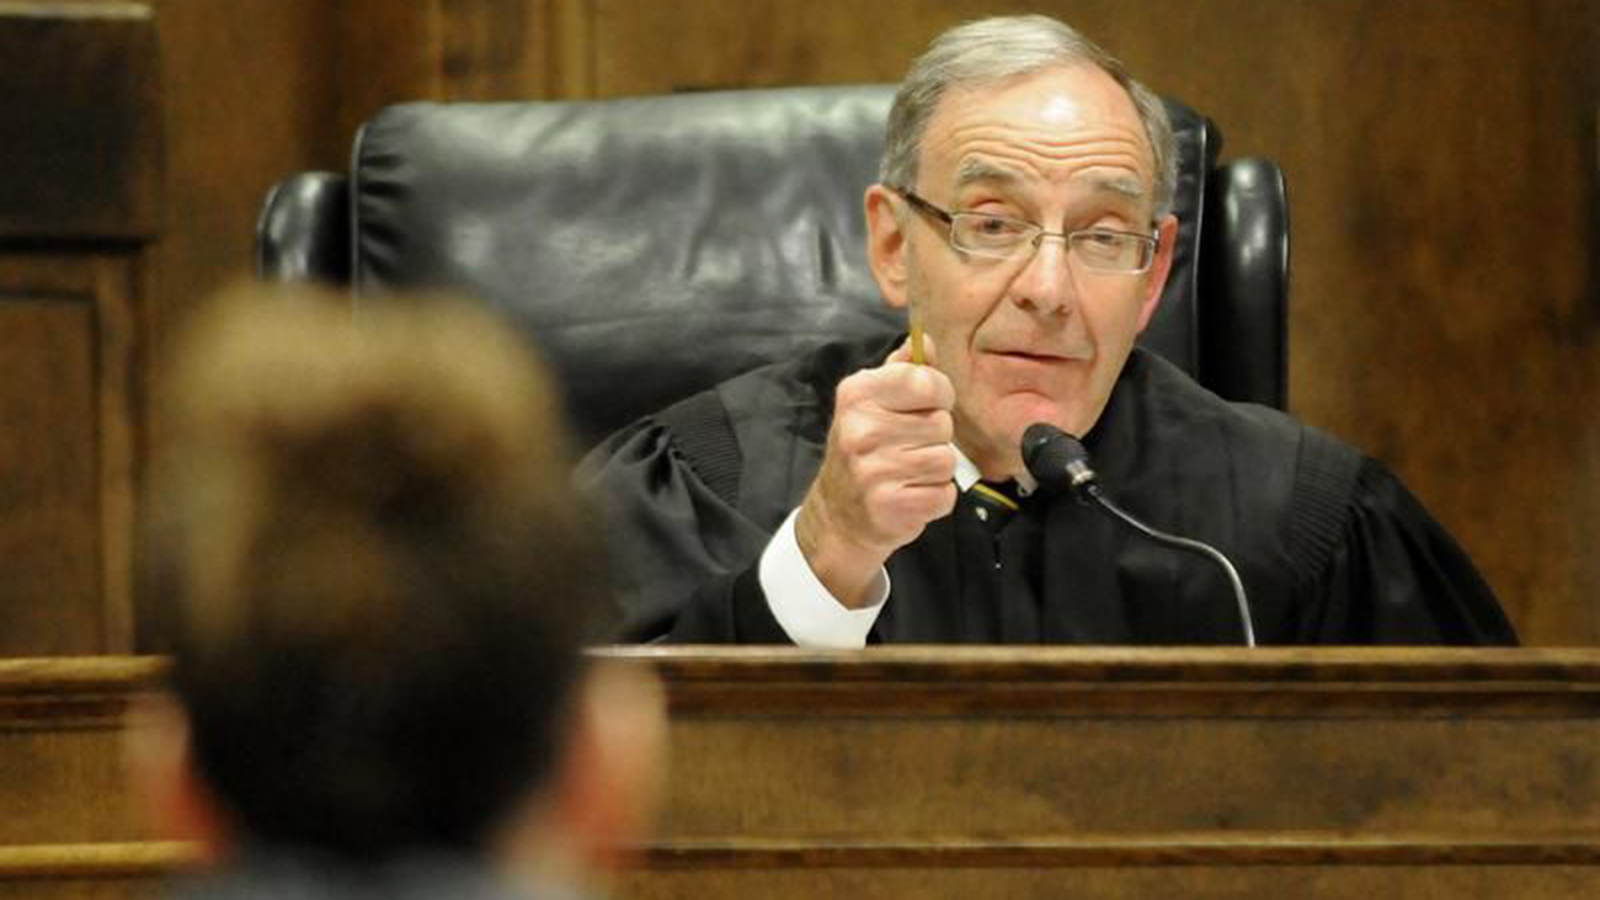 Brown County Circuit Judge Donald Zuidmulder speaks while sitting at the bench in a courtroom.